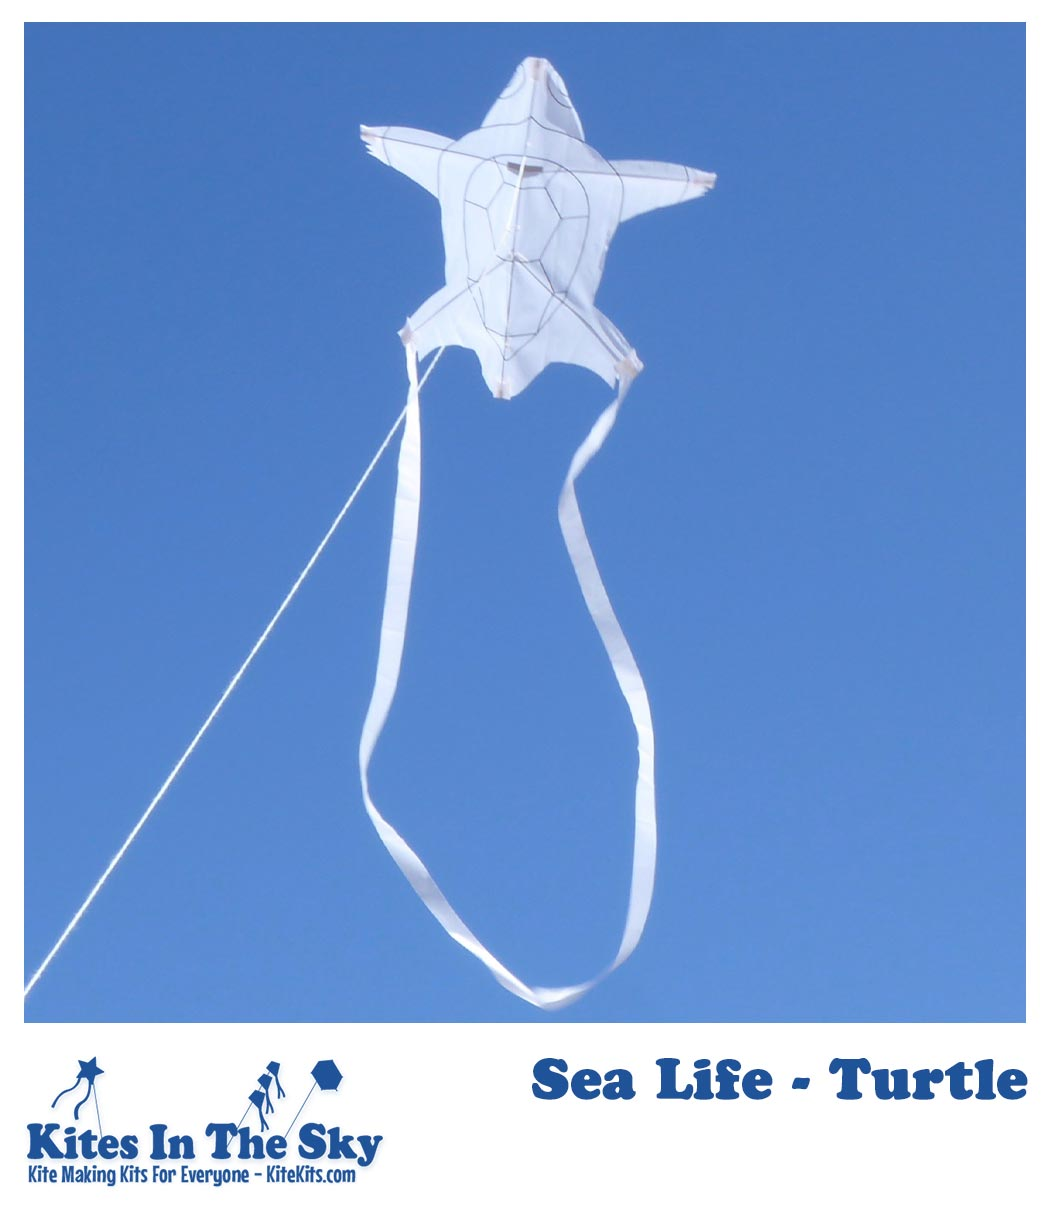 Sea Life - Turtle Kite (1pk-4pk) - Kites In The Sky